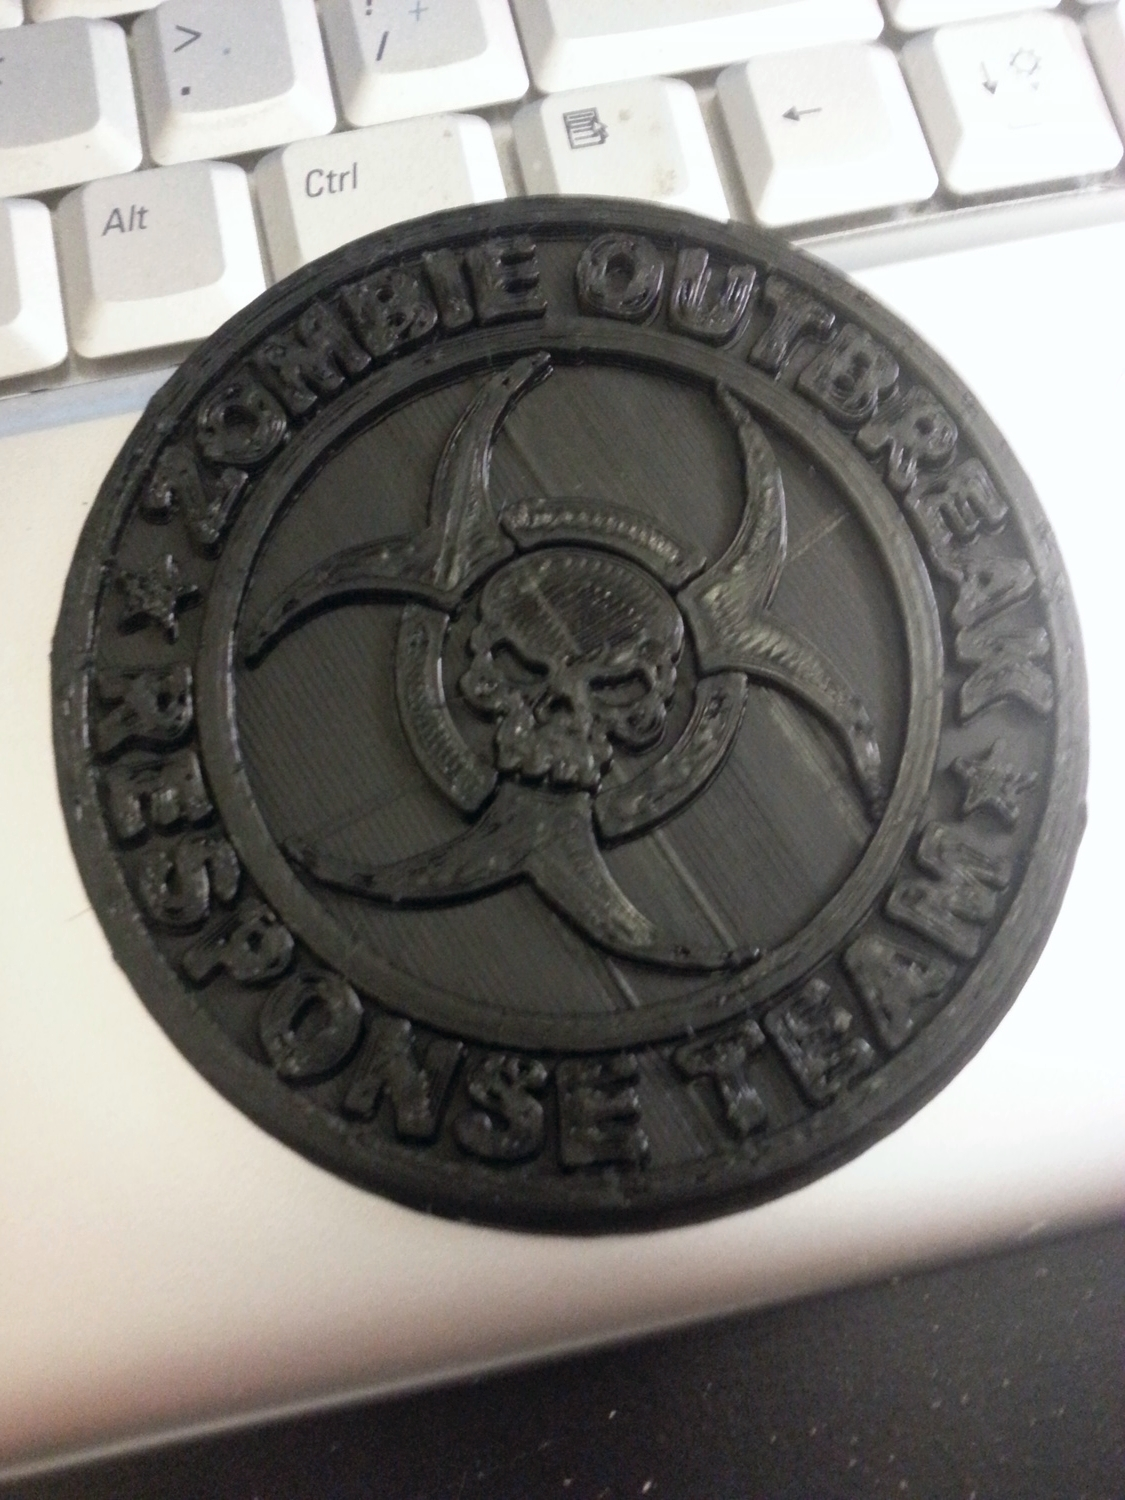 Zombie Outbreak Coaster   Printrbot Simple - 0.25mm layers - Black PLA